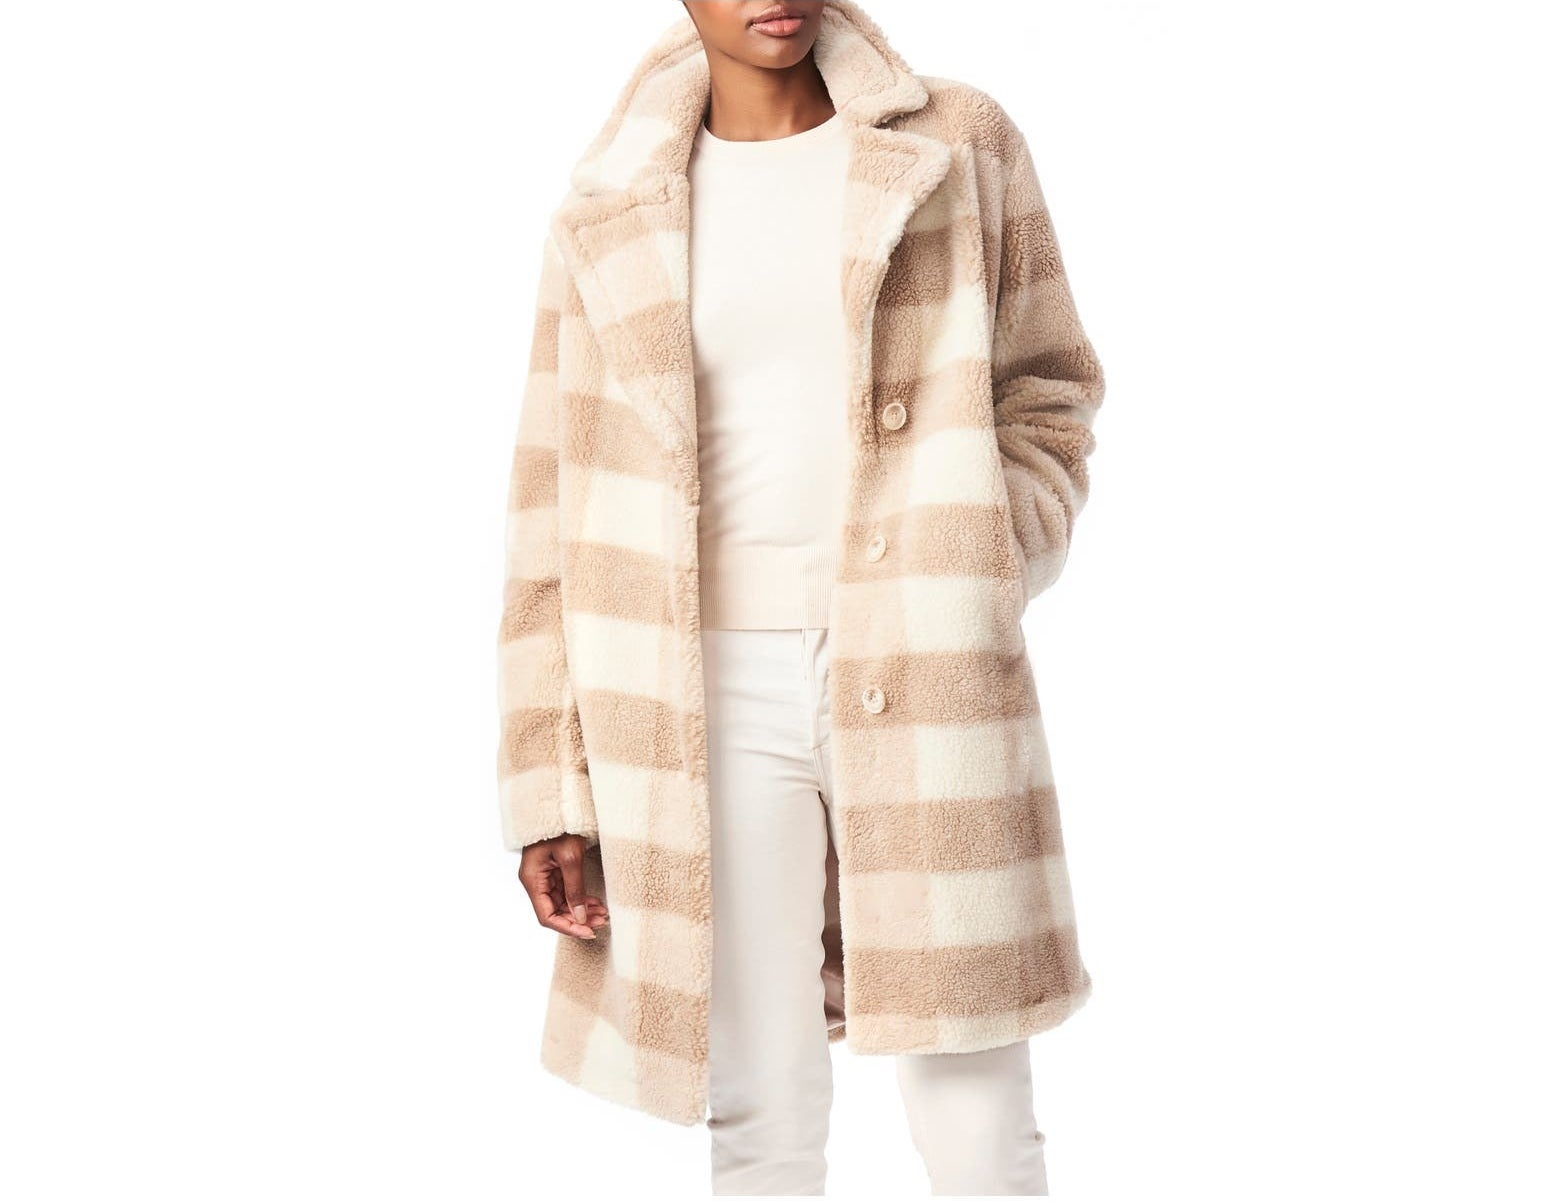 Model wearing the cream and tan check collared coat